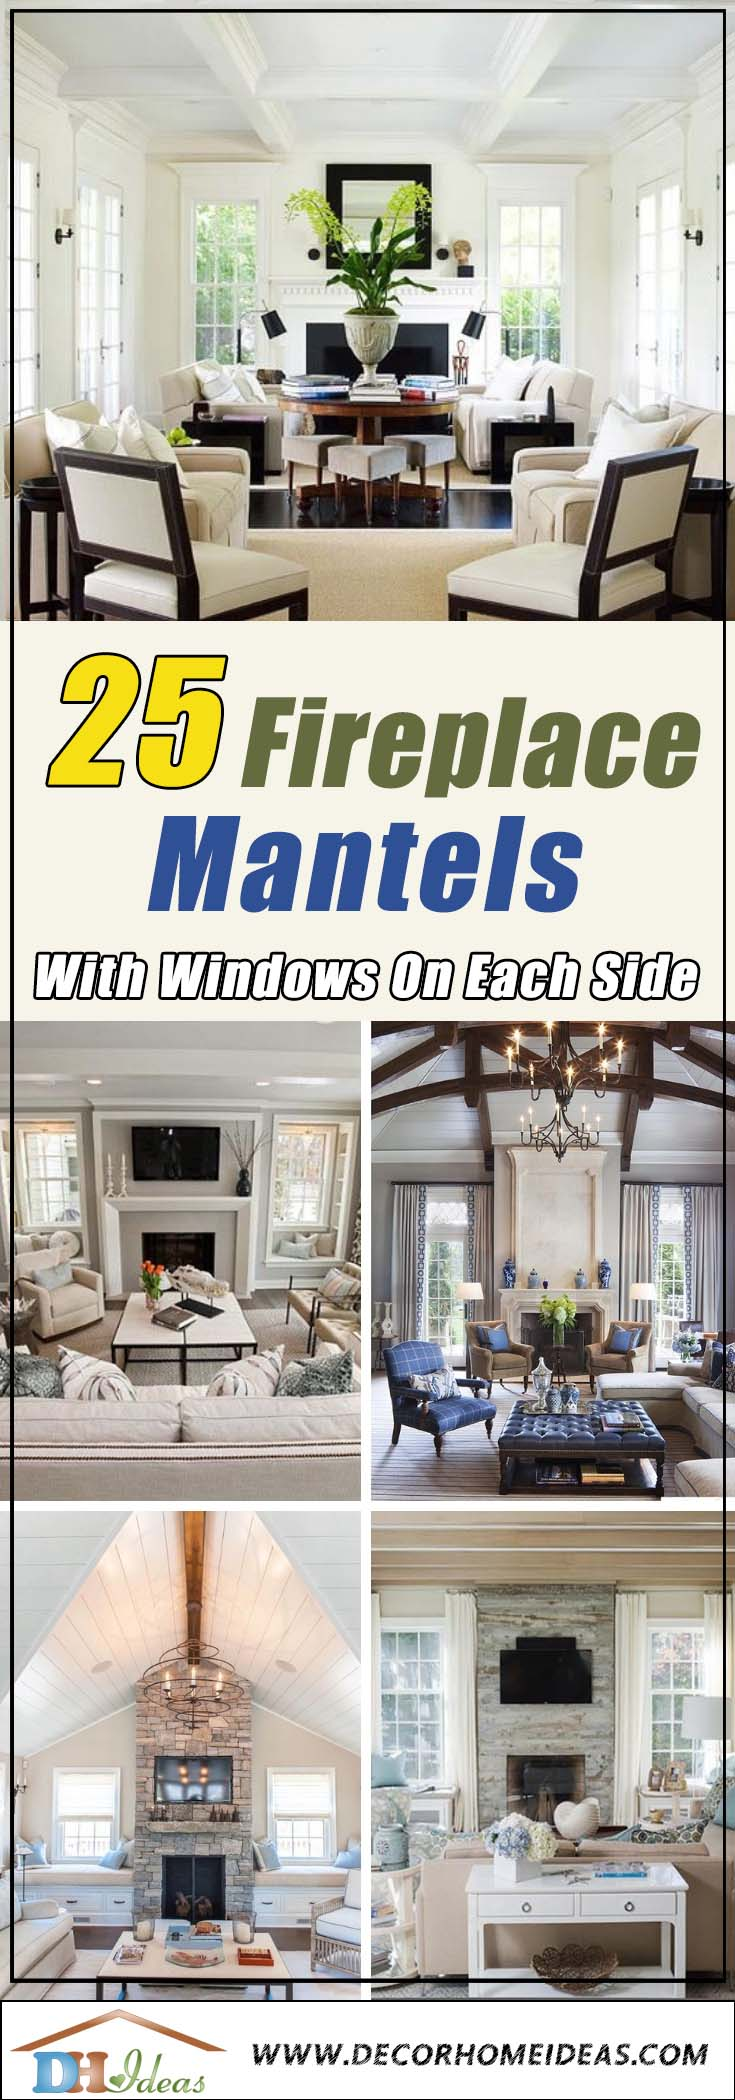 Fireplace mantel ideas with windows on each side. Mantels with seating or doors on both sides. #fireplacemantel #fireplace #mantel #homedecor #decorhomeideas